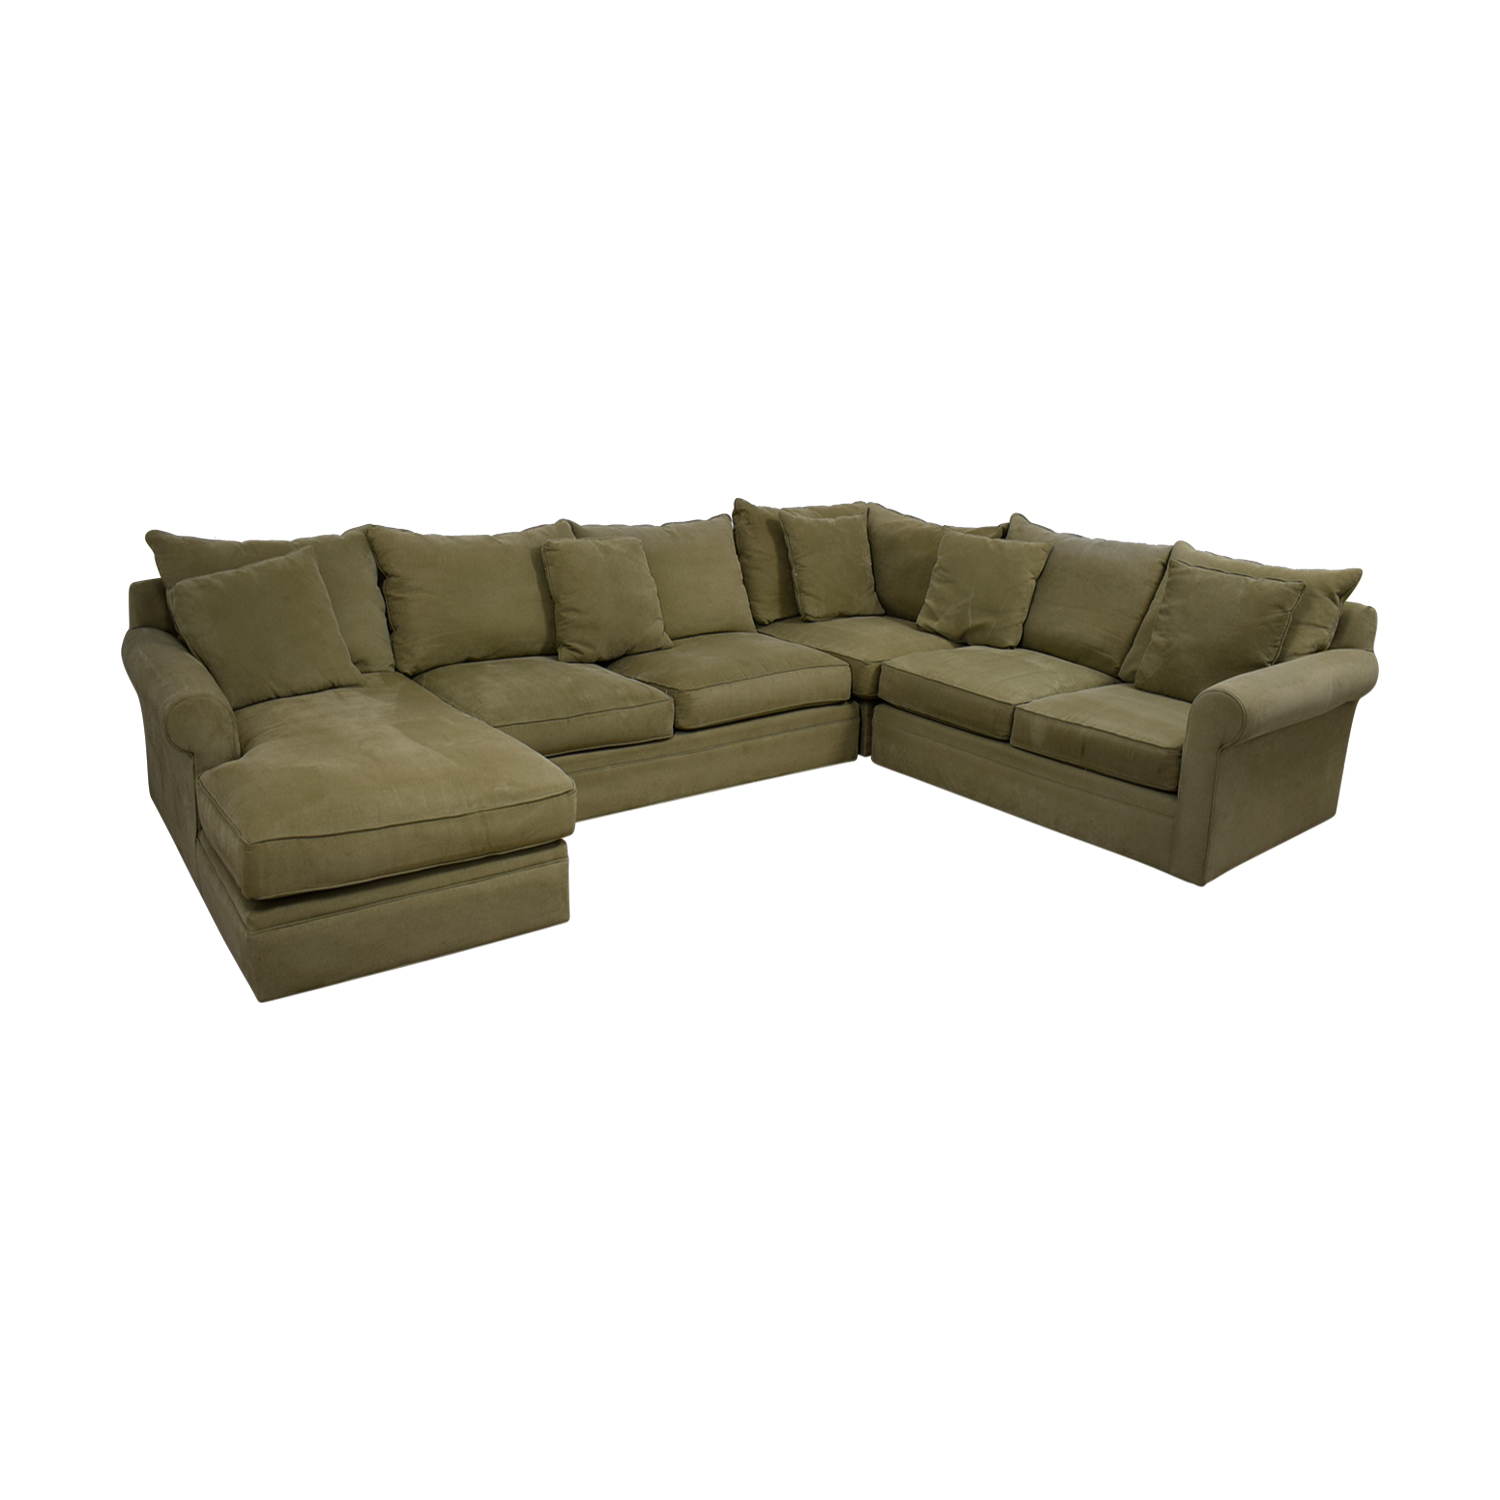 Macy's Macy's Beige L-Shaped Chaise Sectional coupon